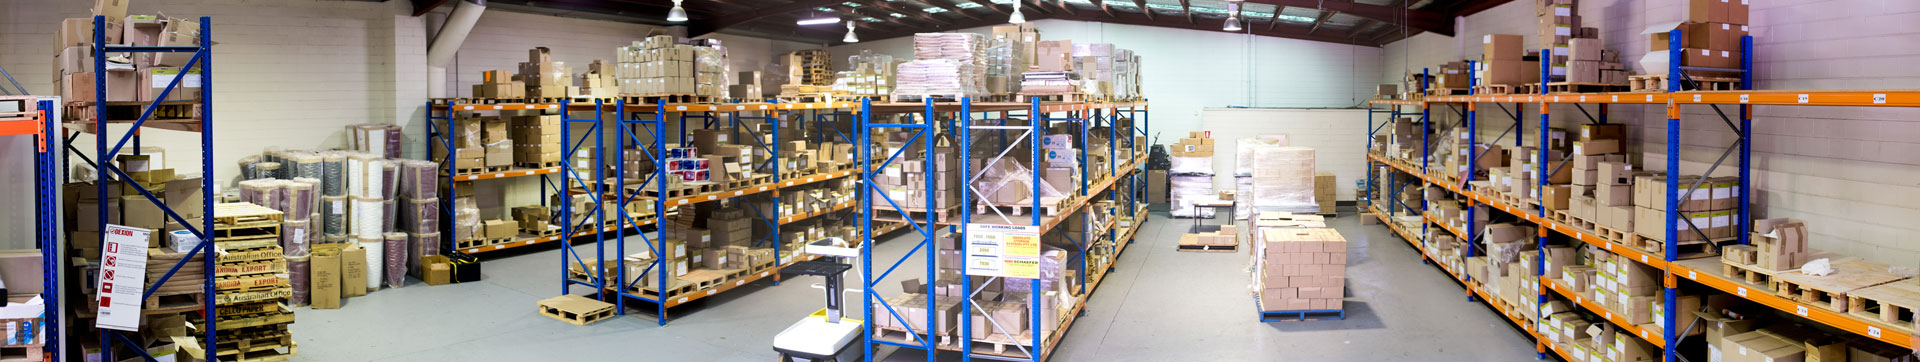 Printing Warehouse & Distribution Management